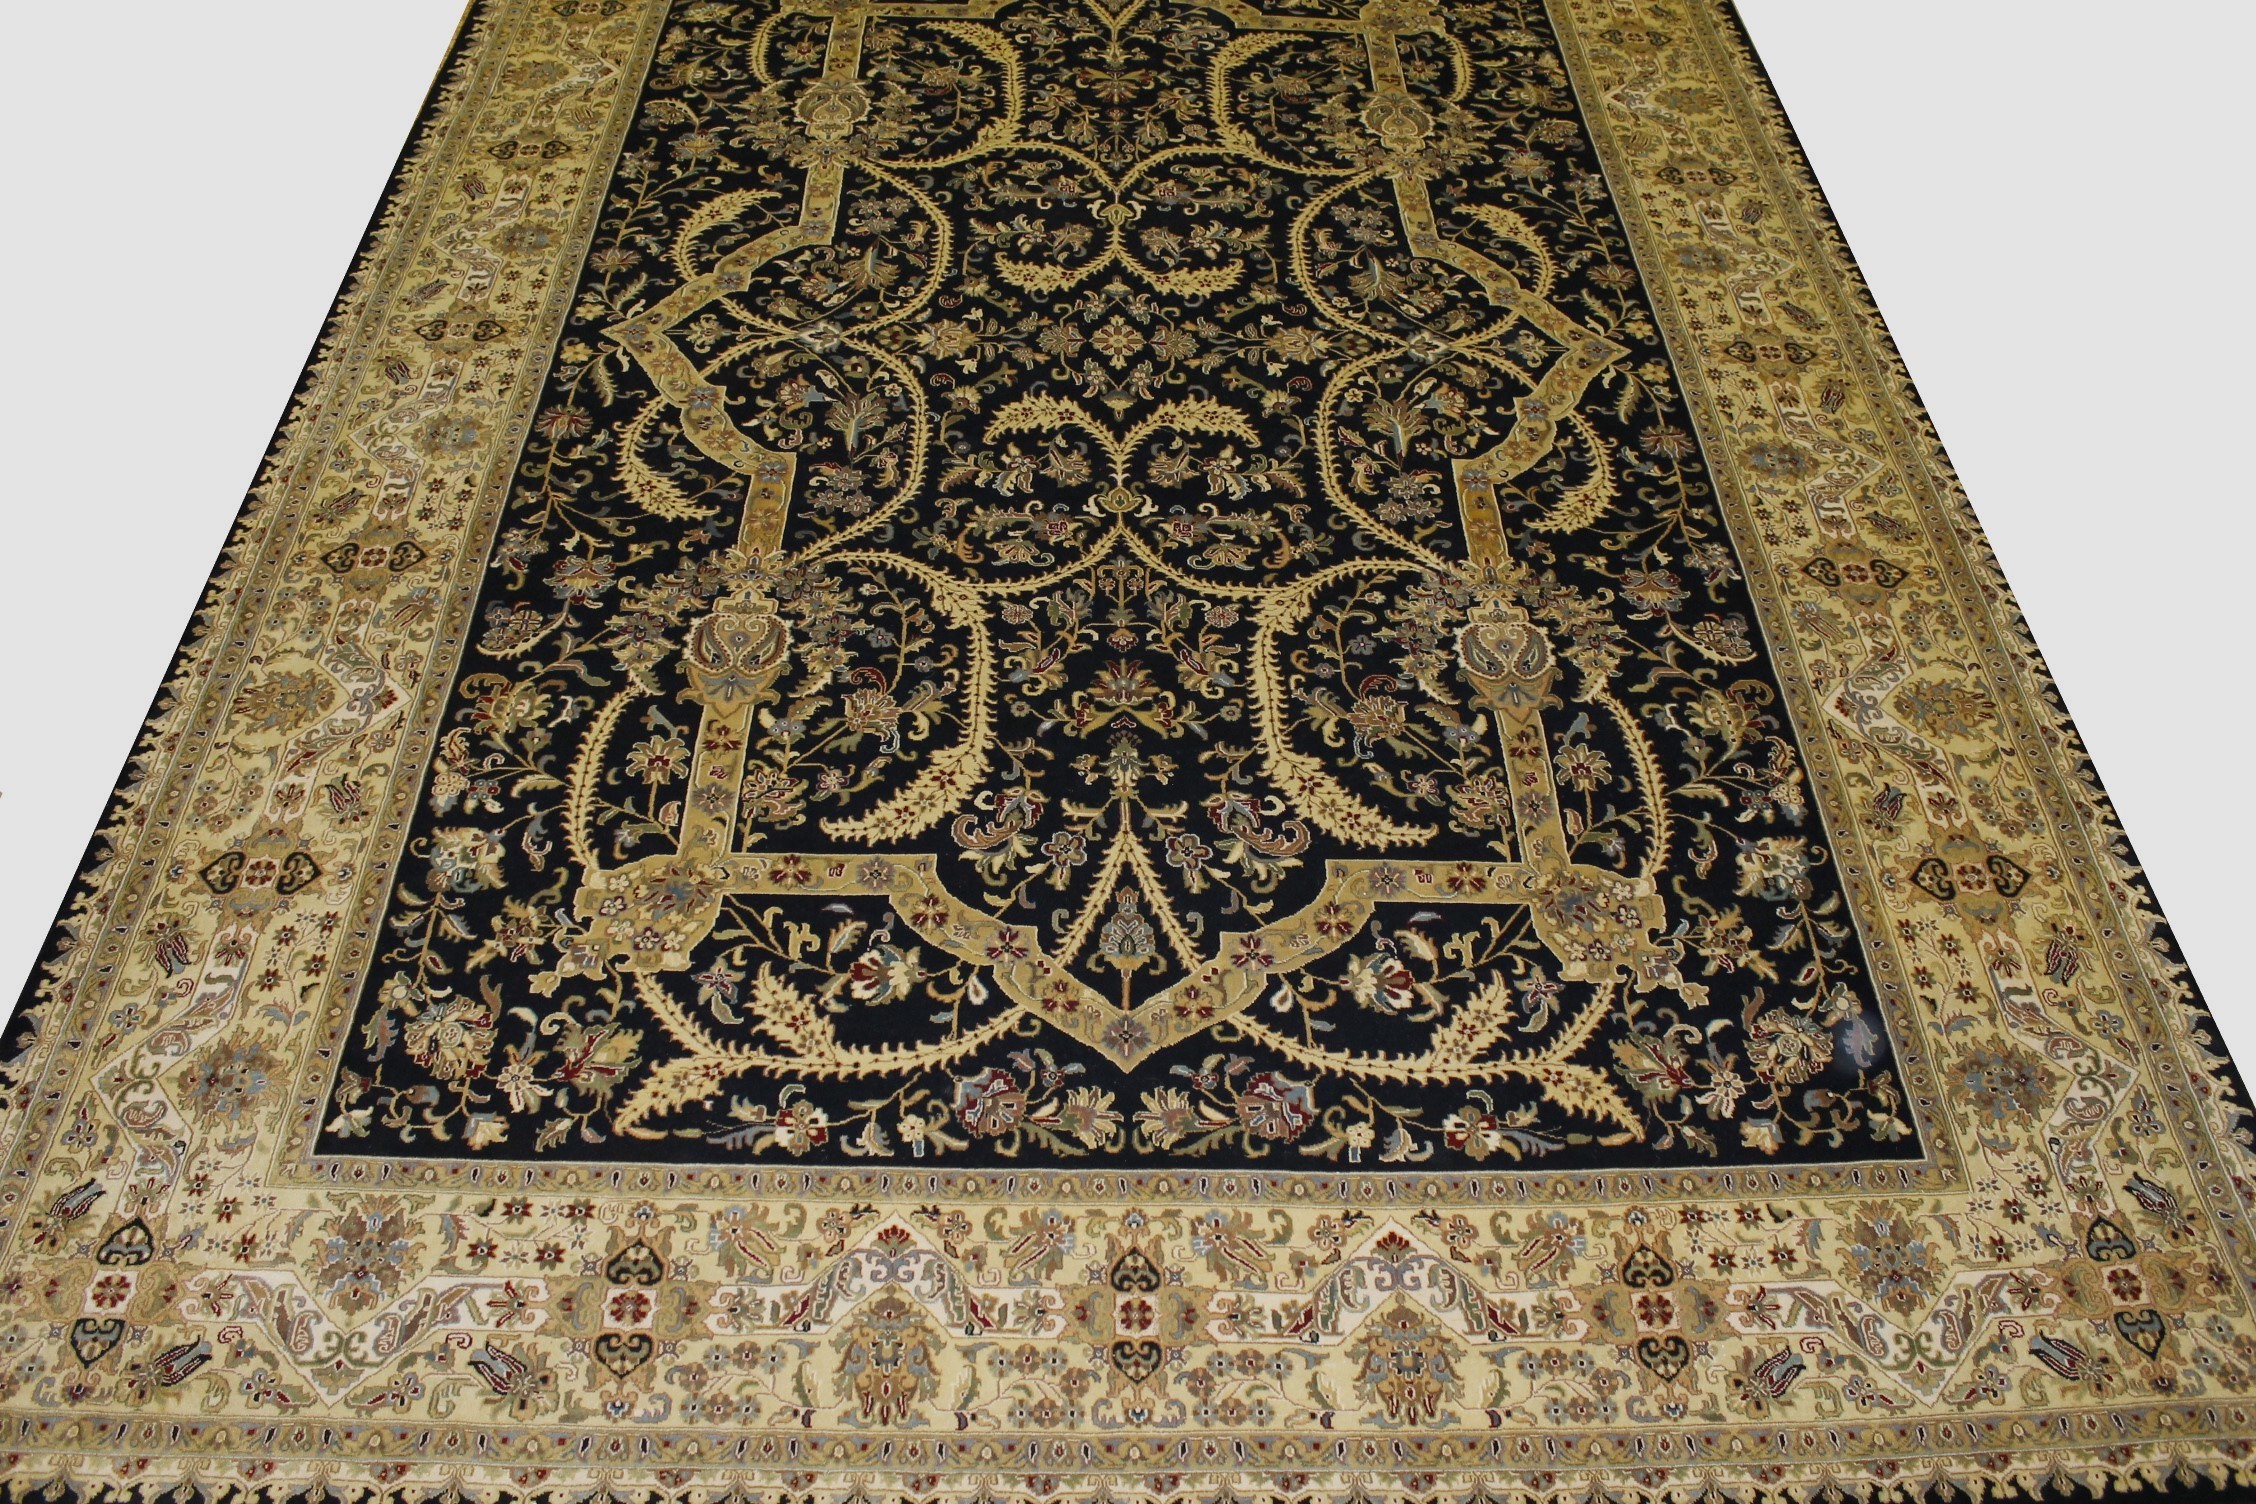 10x14 Traditional Hand Knotted Wool Area Rug - MR11627